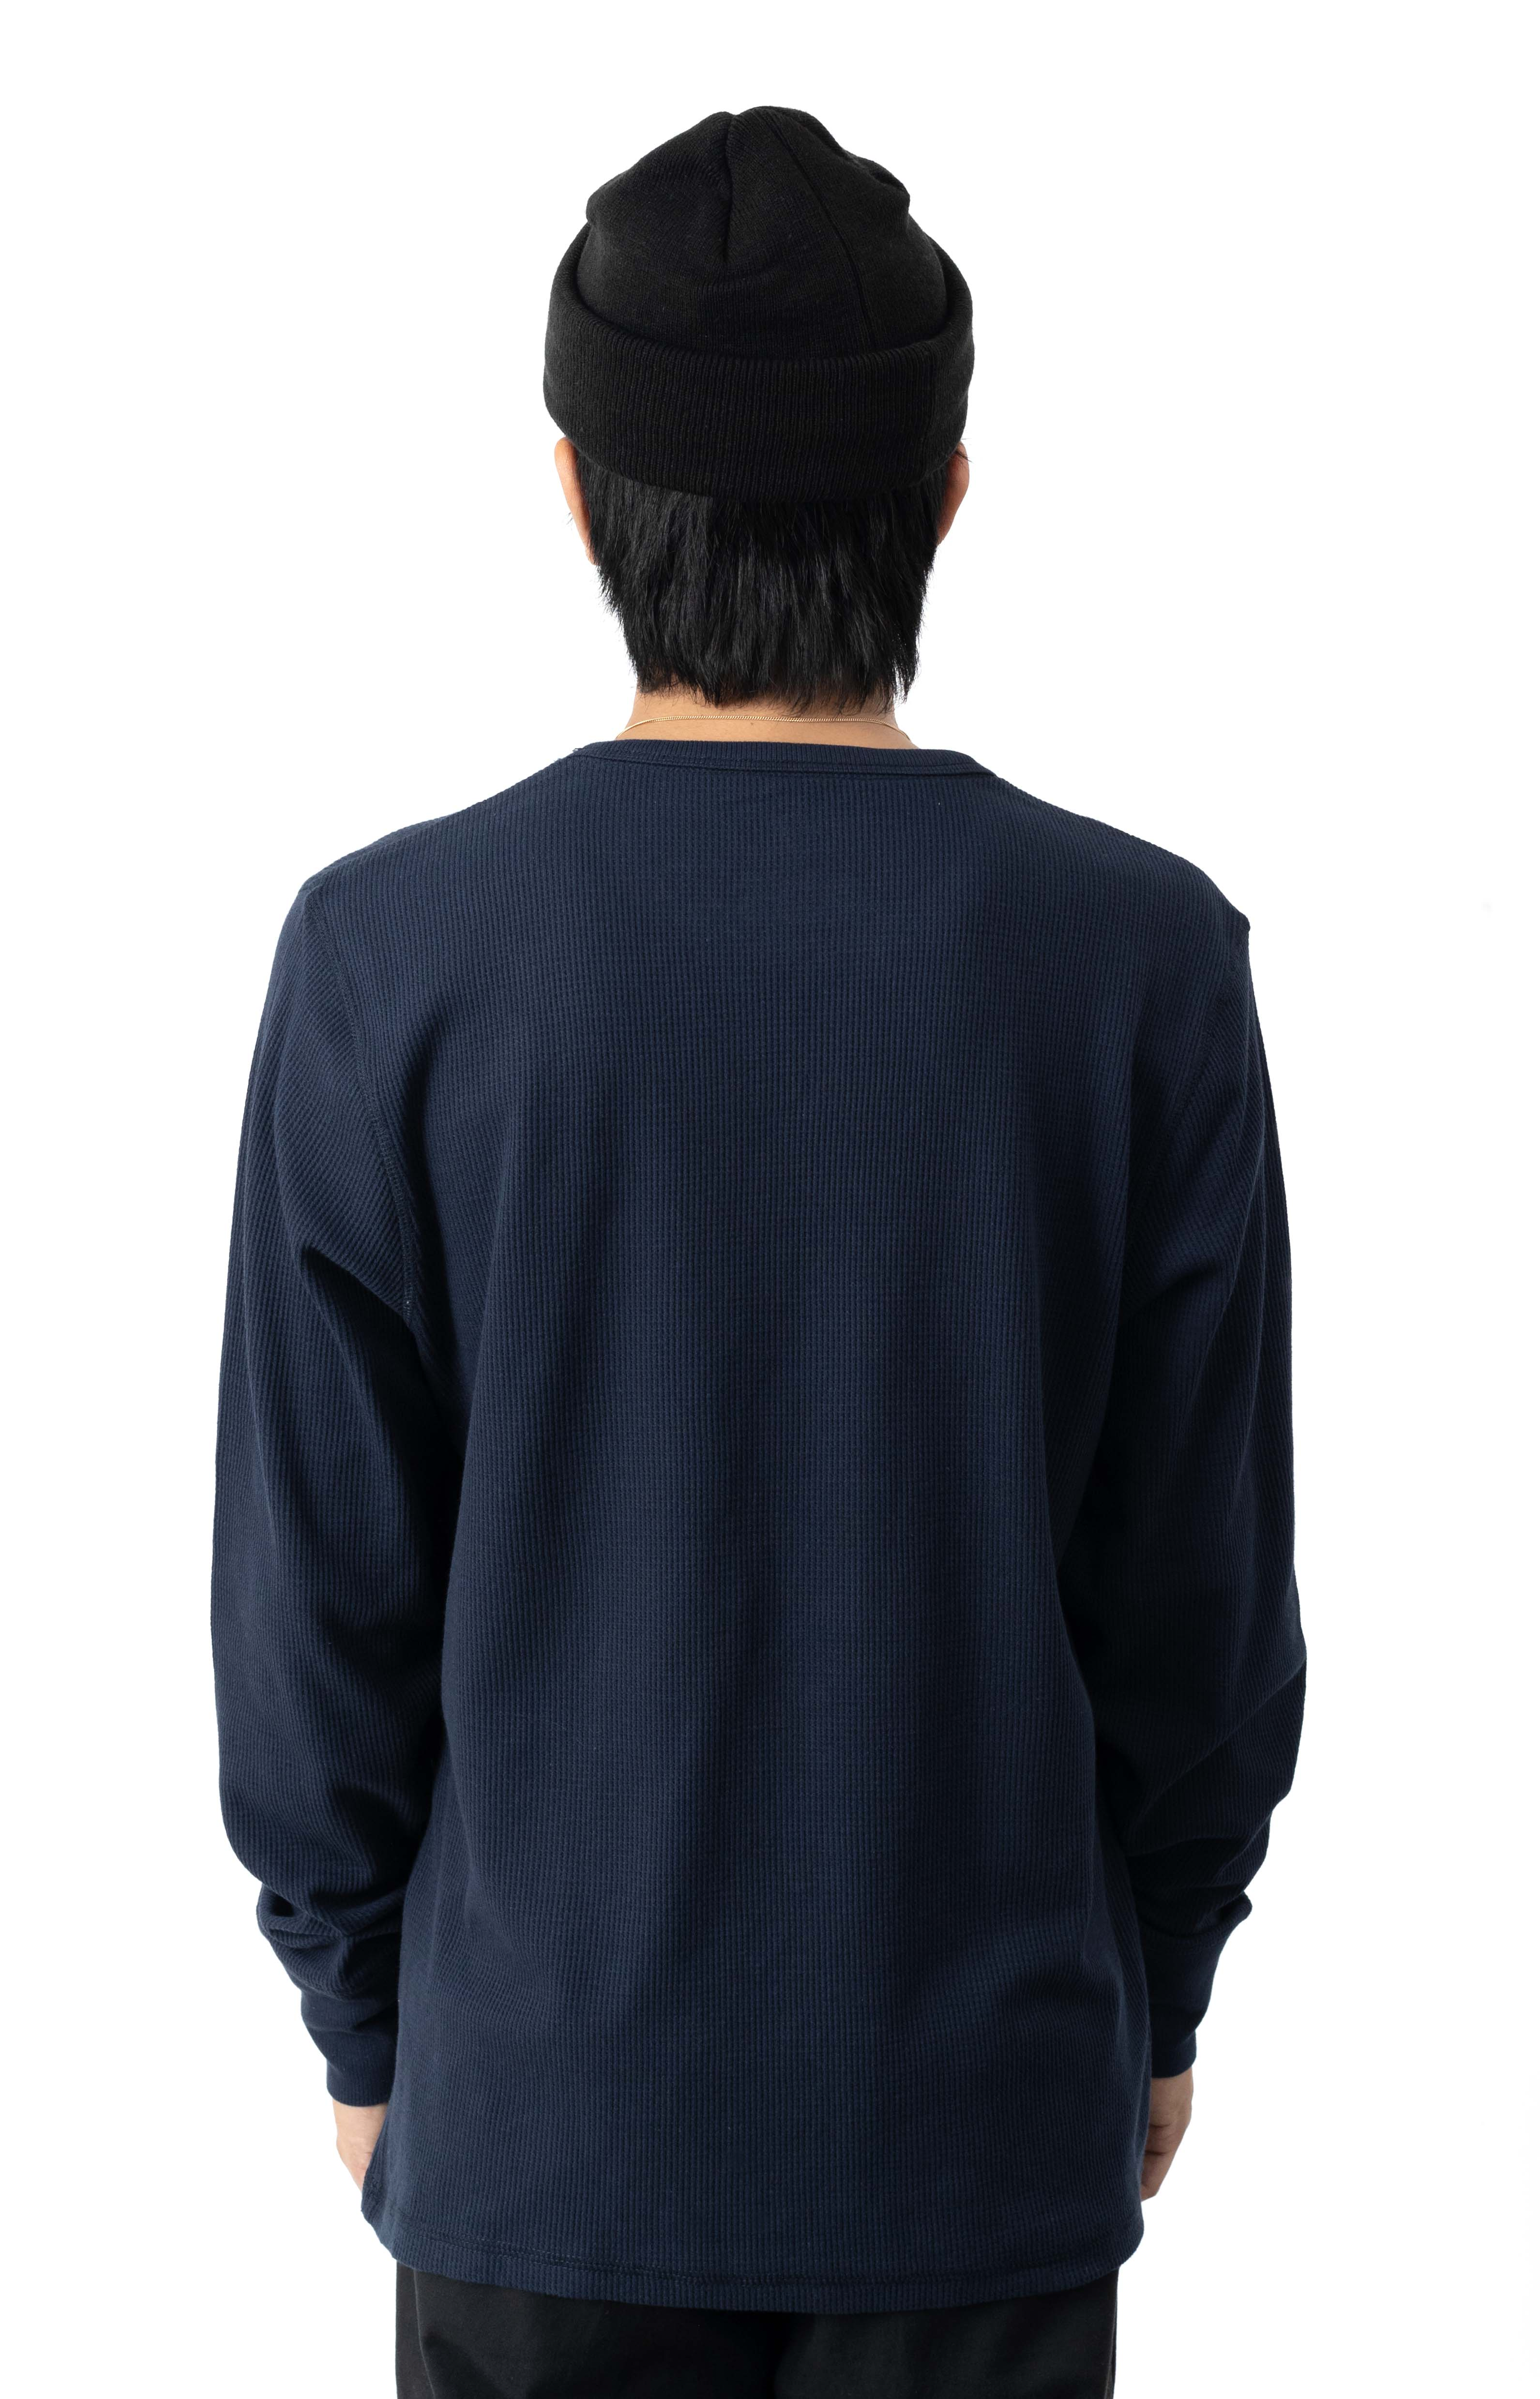 Thermal L/S Shirt - Dark Navy  3